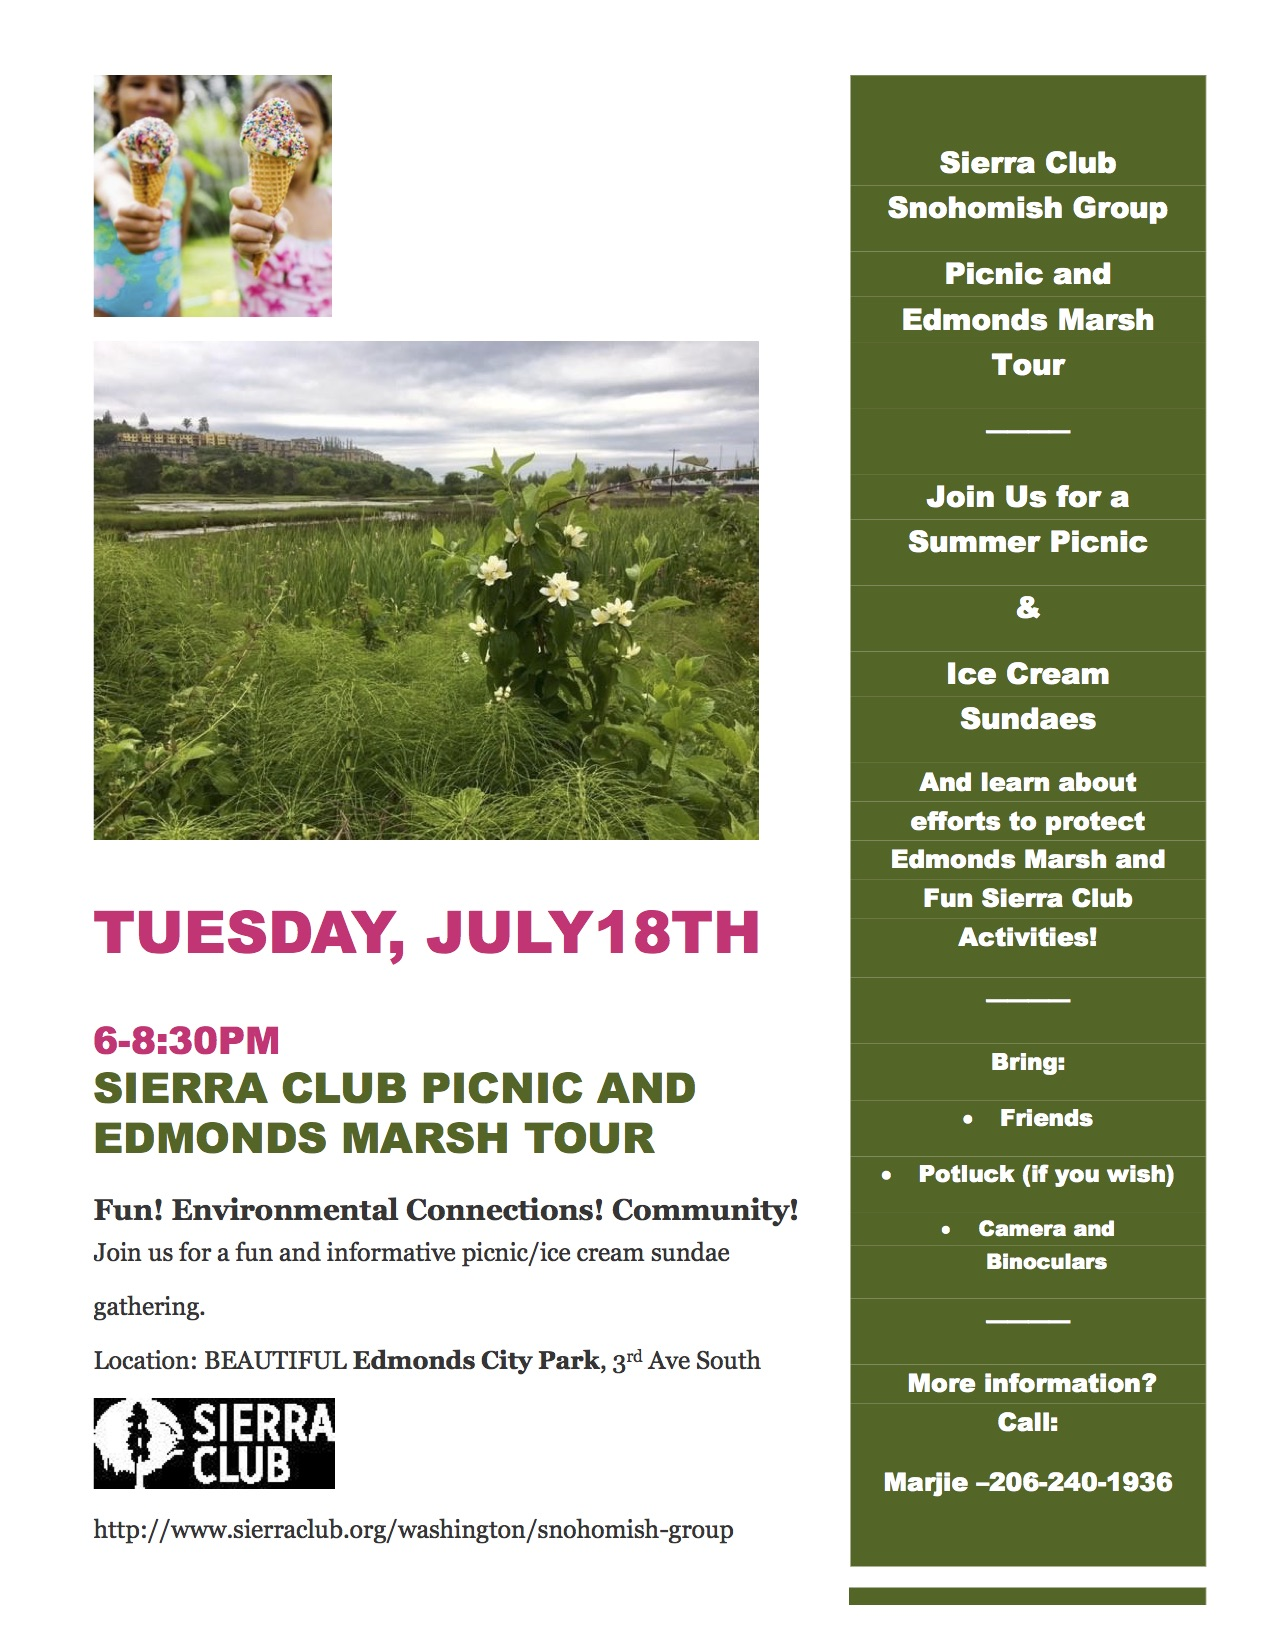 Join The Sierra Club's Snohomish Group For A Summer Picnic And Ice Cream  Sundaes, And Learn About Efforts To Protect The Edmonds Marsh From 68:30  Pm At